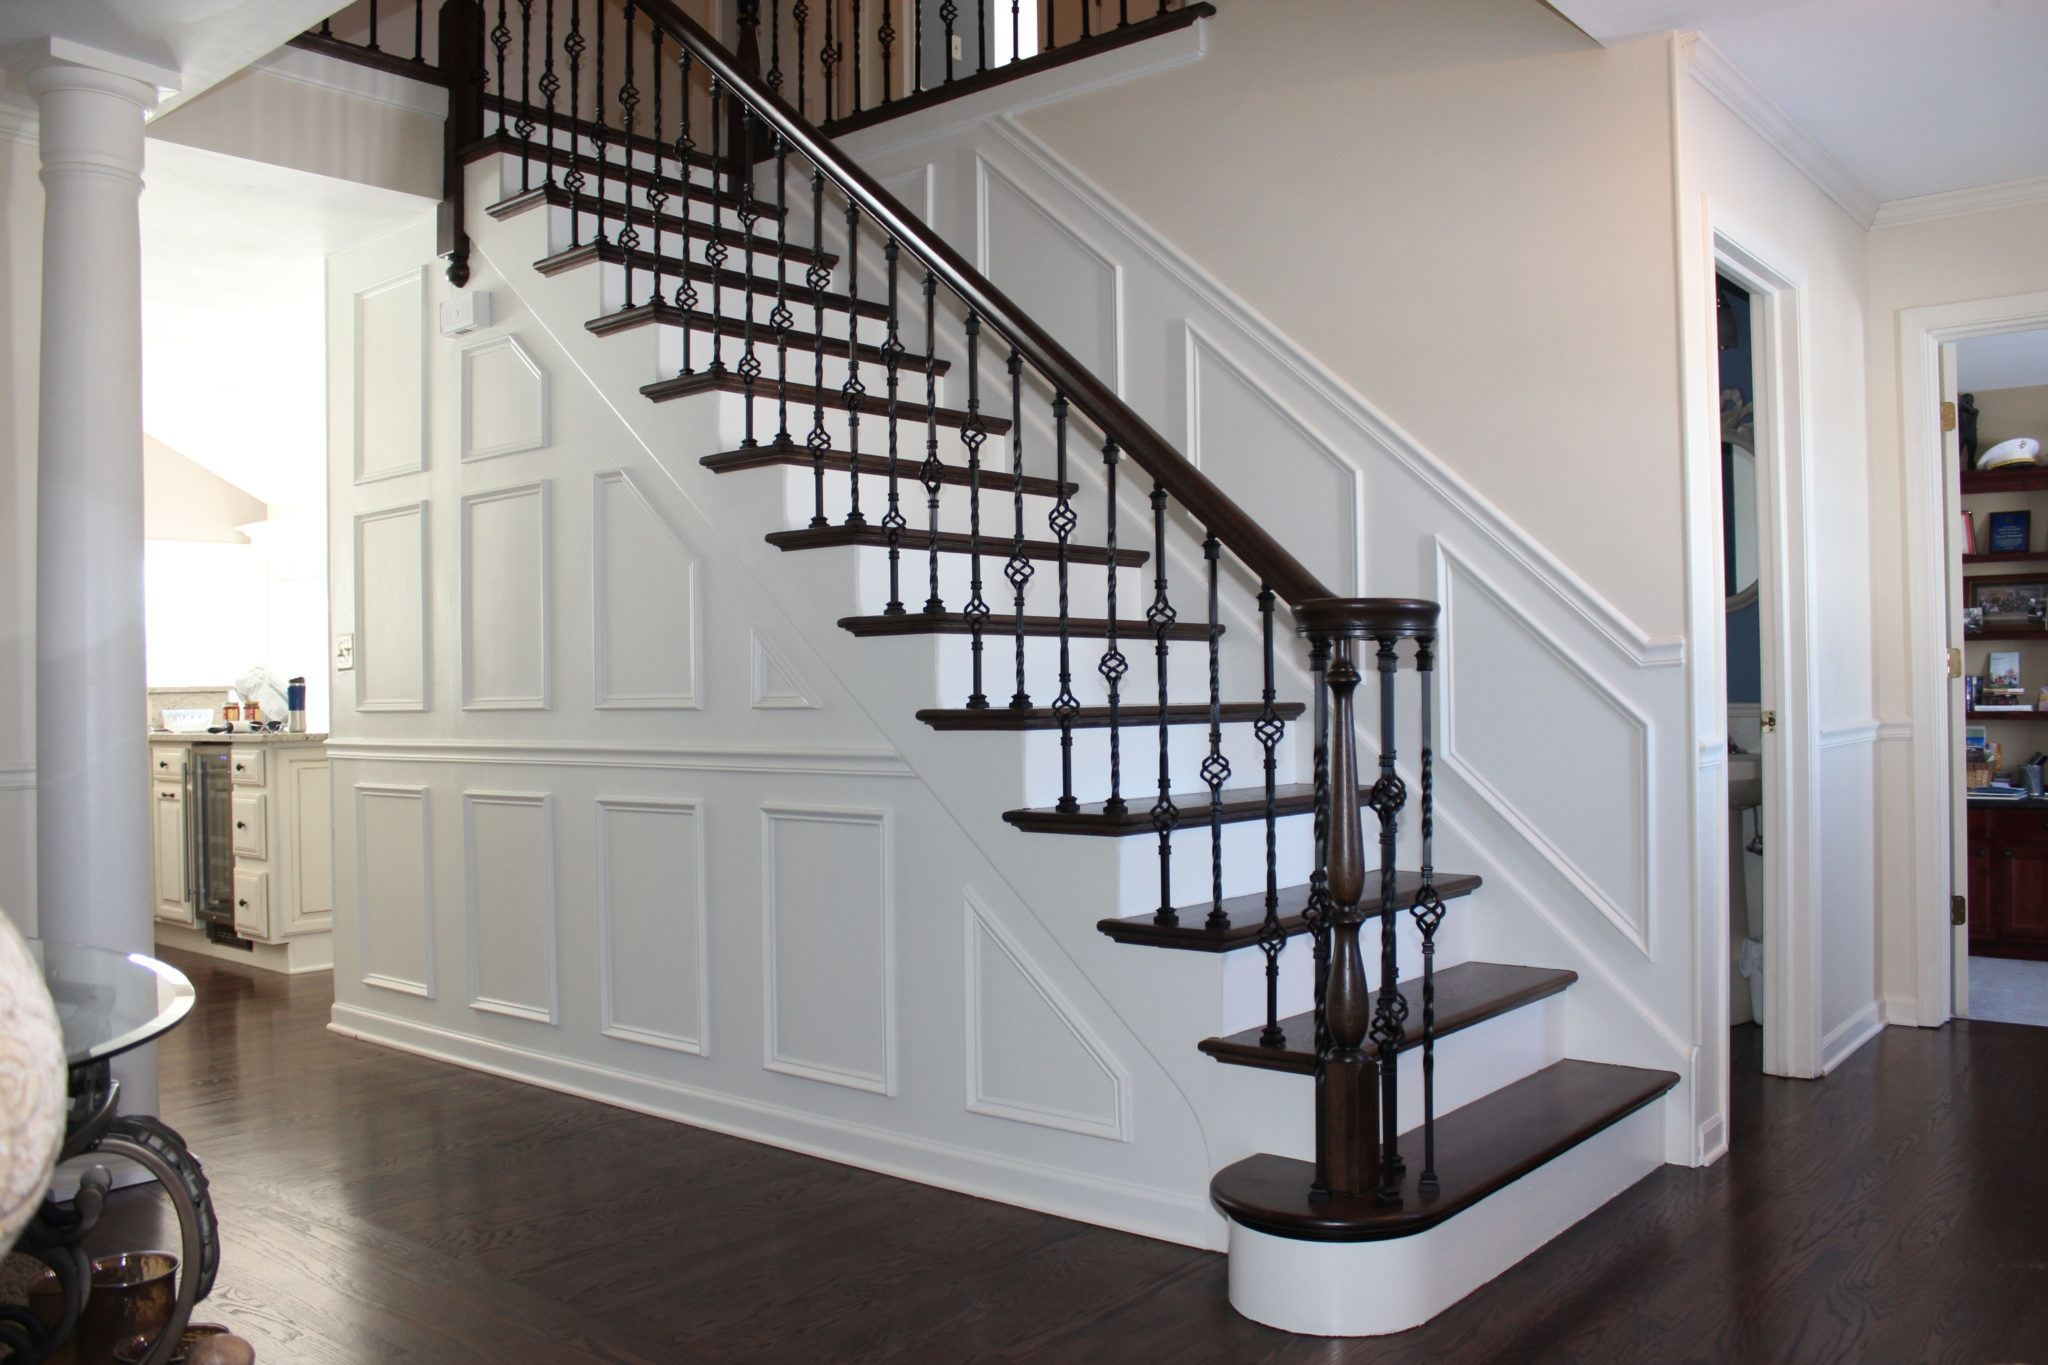 5 Stunning Stairway Trends For Your Home The Money Pit | New Handrail For Stairs | Traditional | Wall Both Side | Contemporary | Mission Style | Wrought Iron